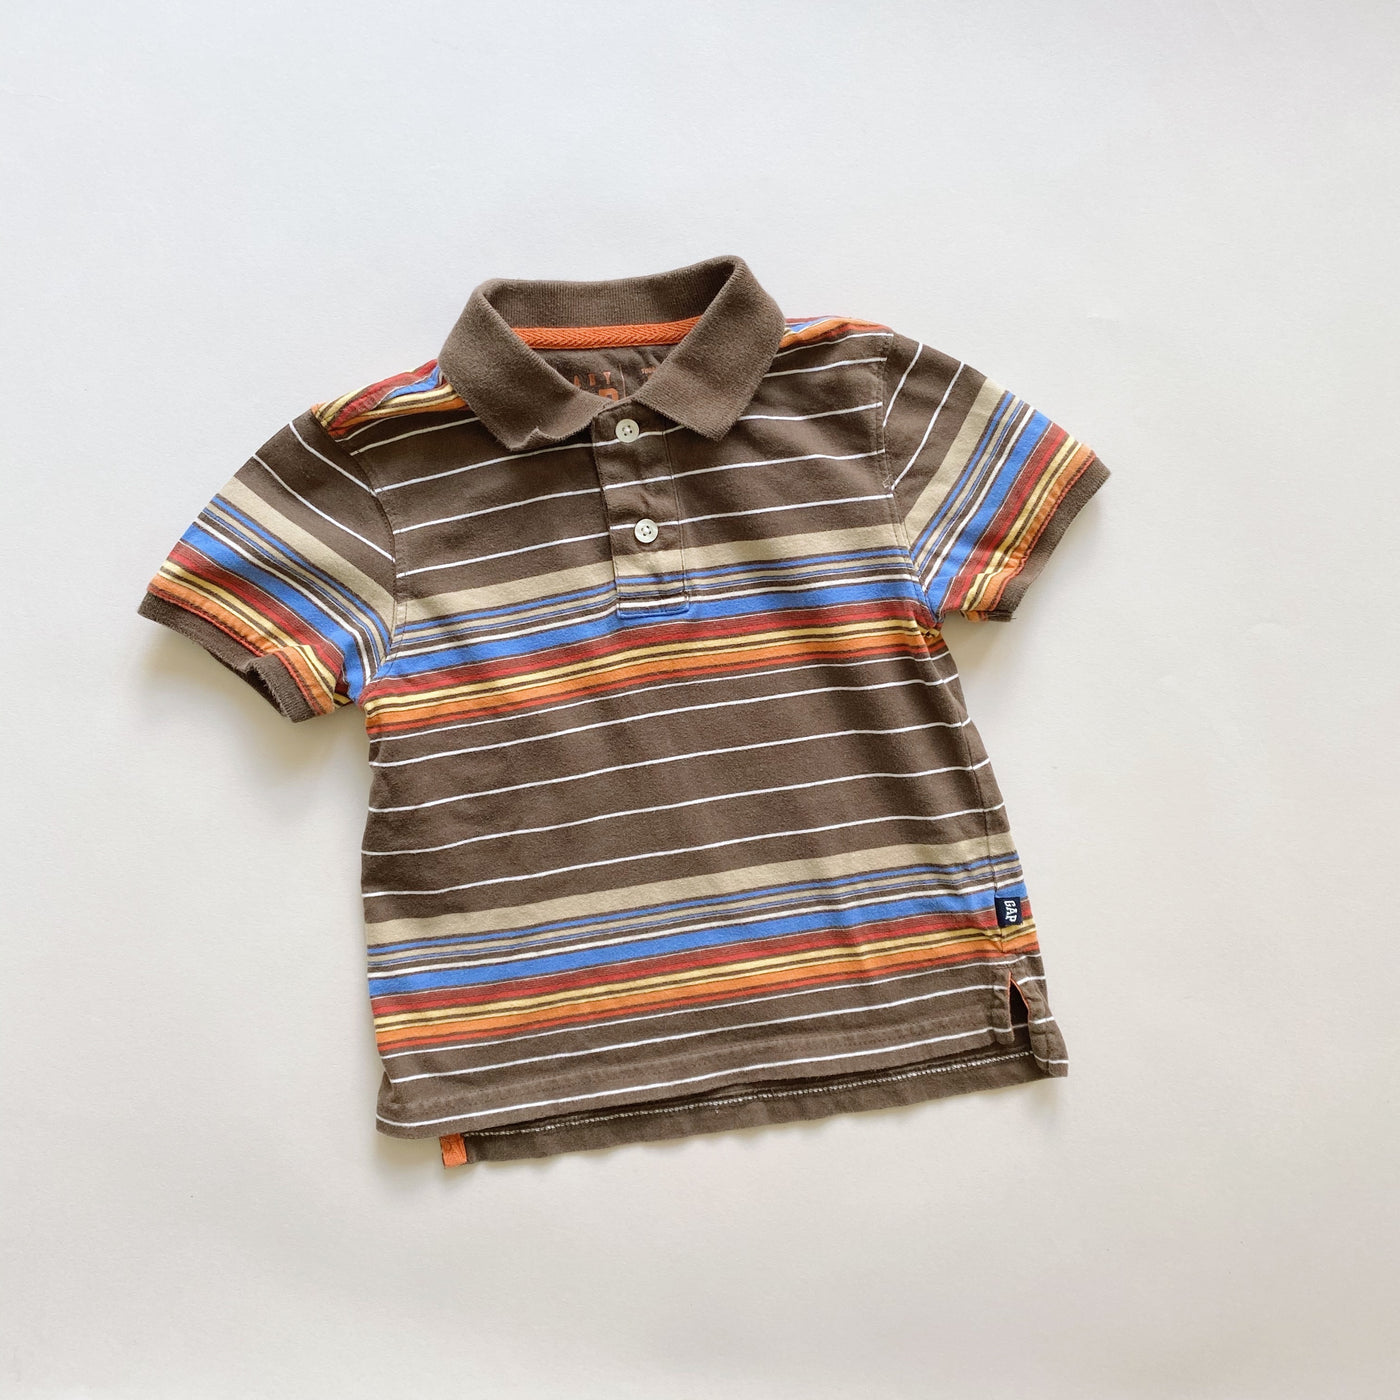 Baby Gap Striped Short-Sleeved Polo / Size 3T